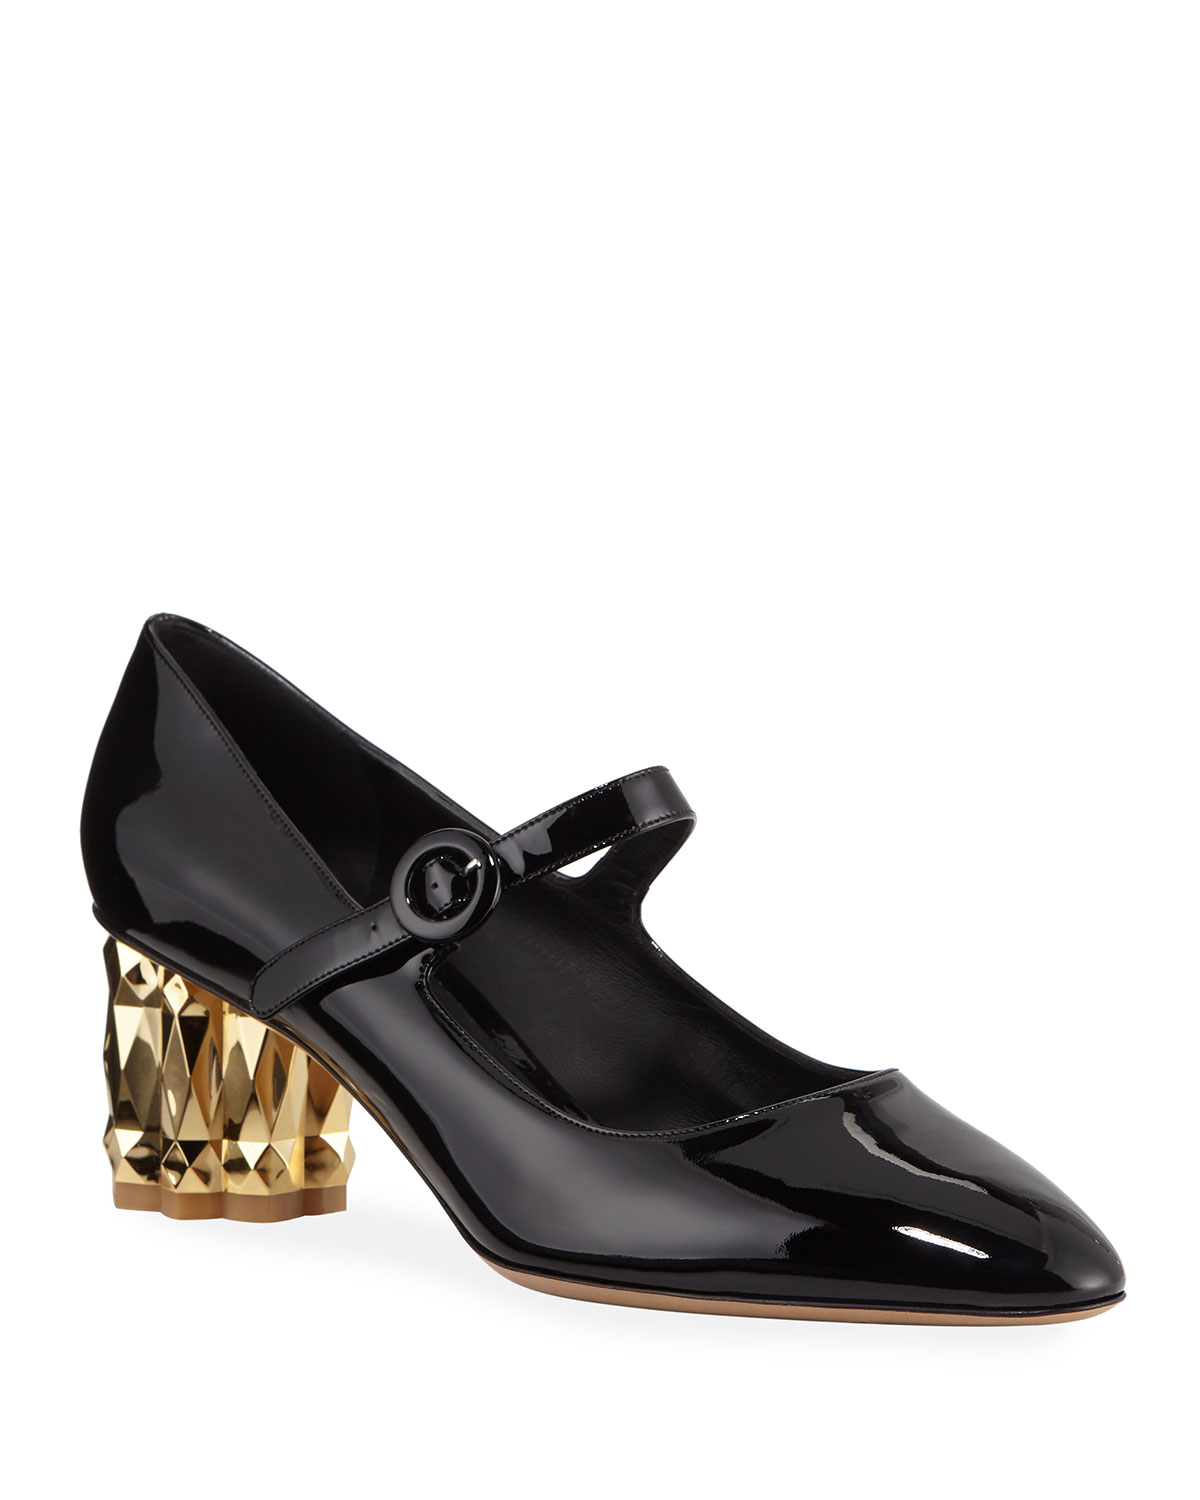 Ortensia Metallic-Heel Patent Pumps